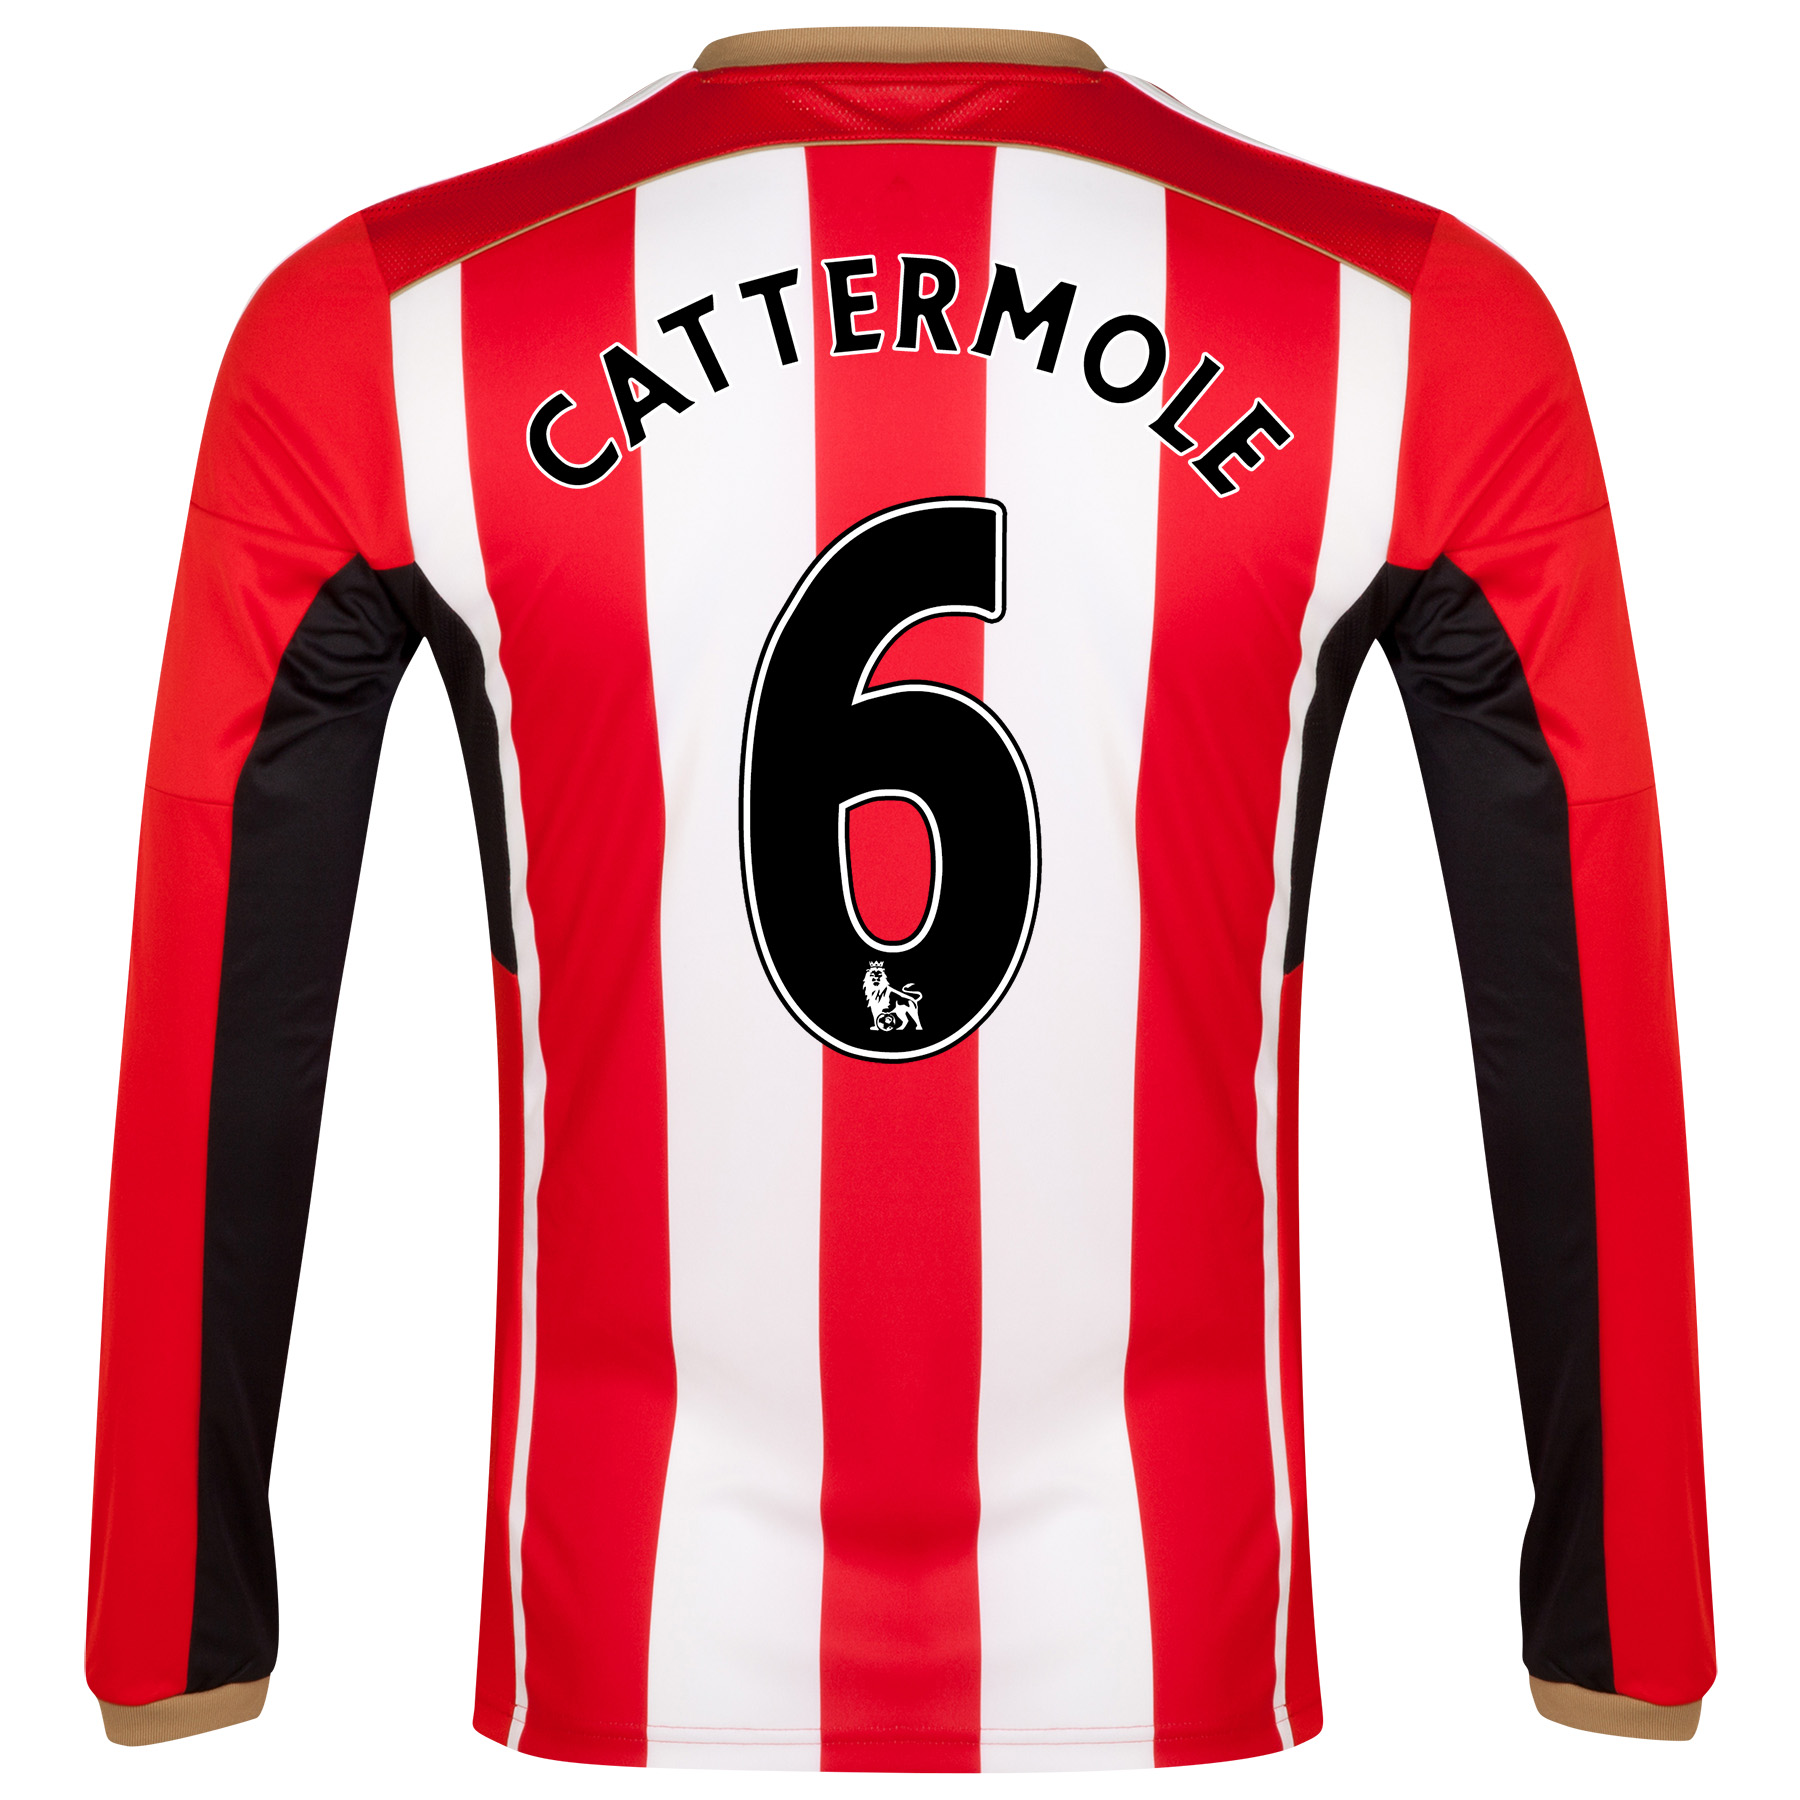 Sunderland Home Shirt 2014/15 - Long Sleeved Red with Cattermole 6 printing